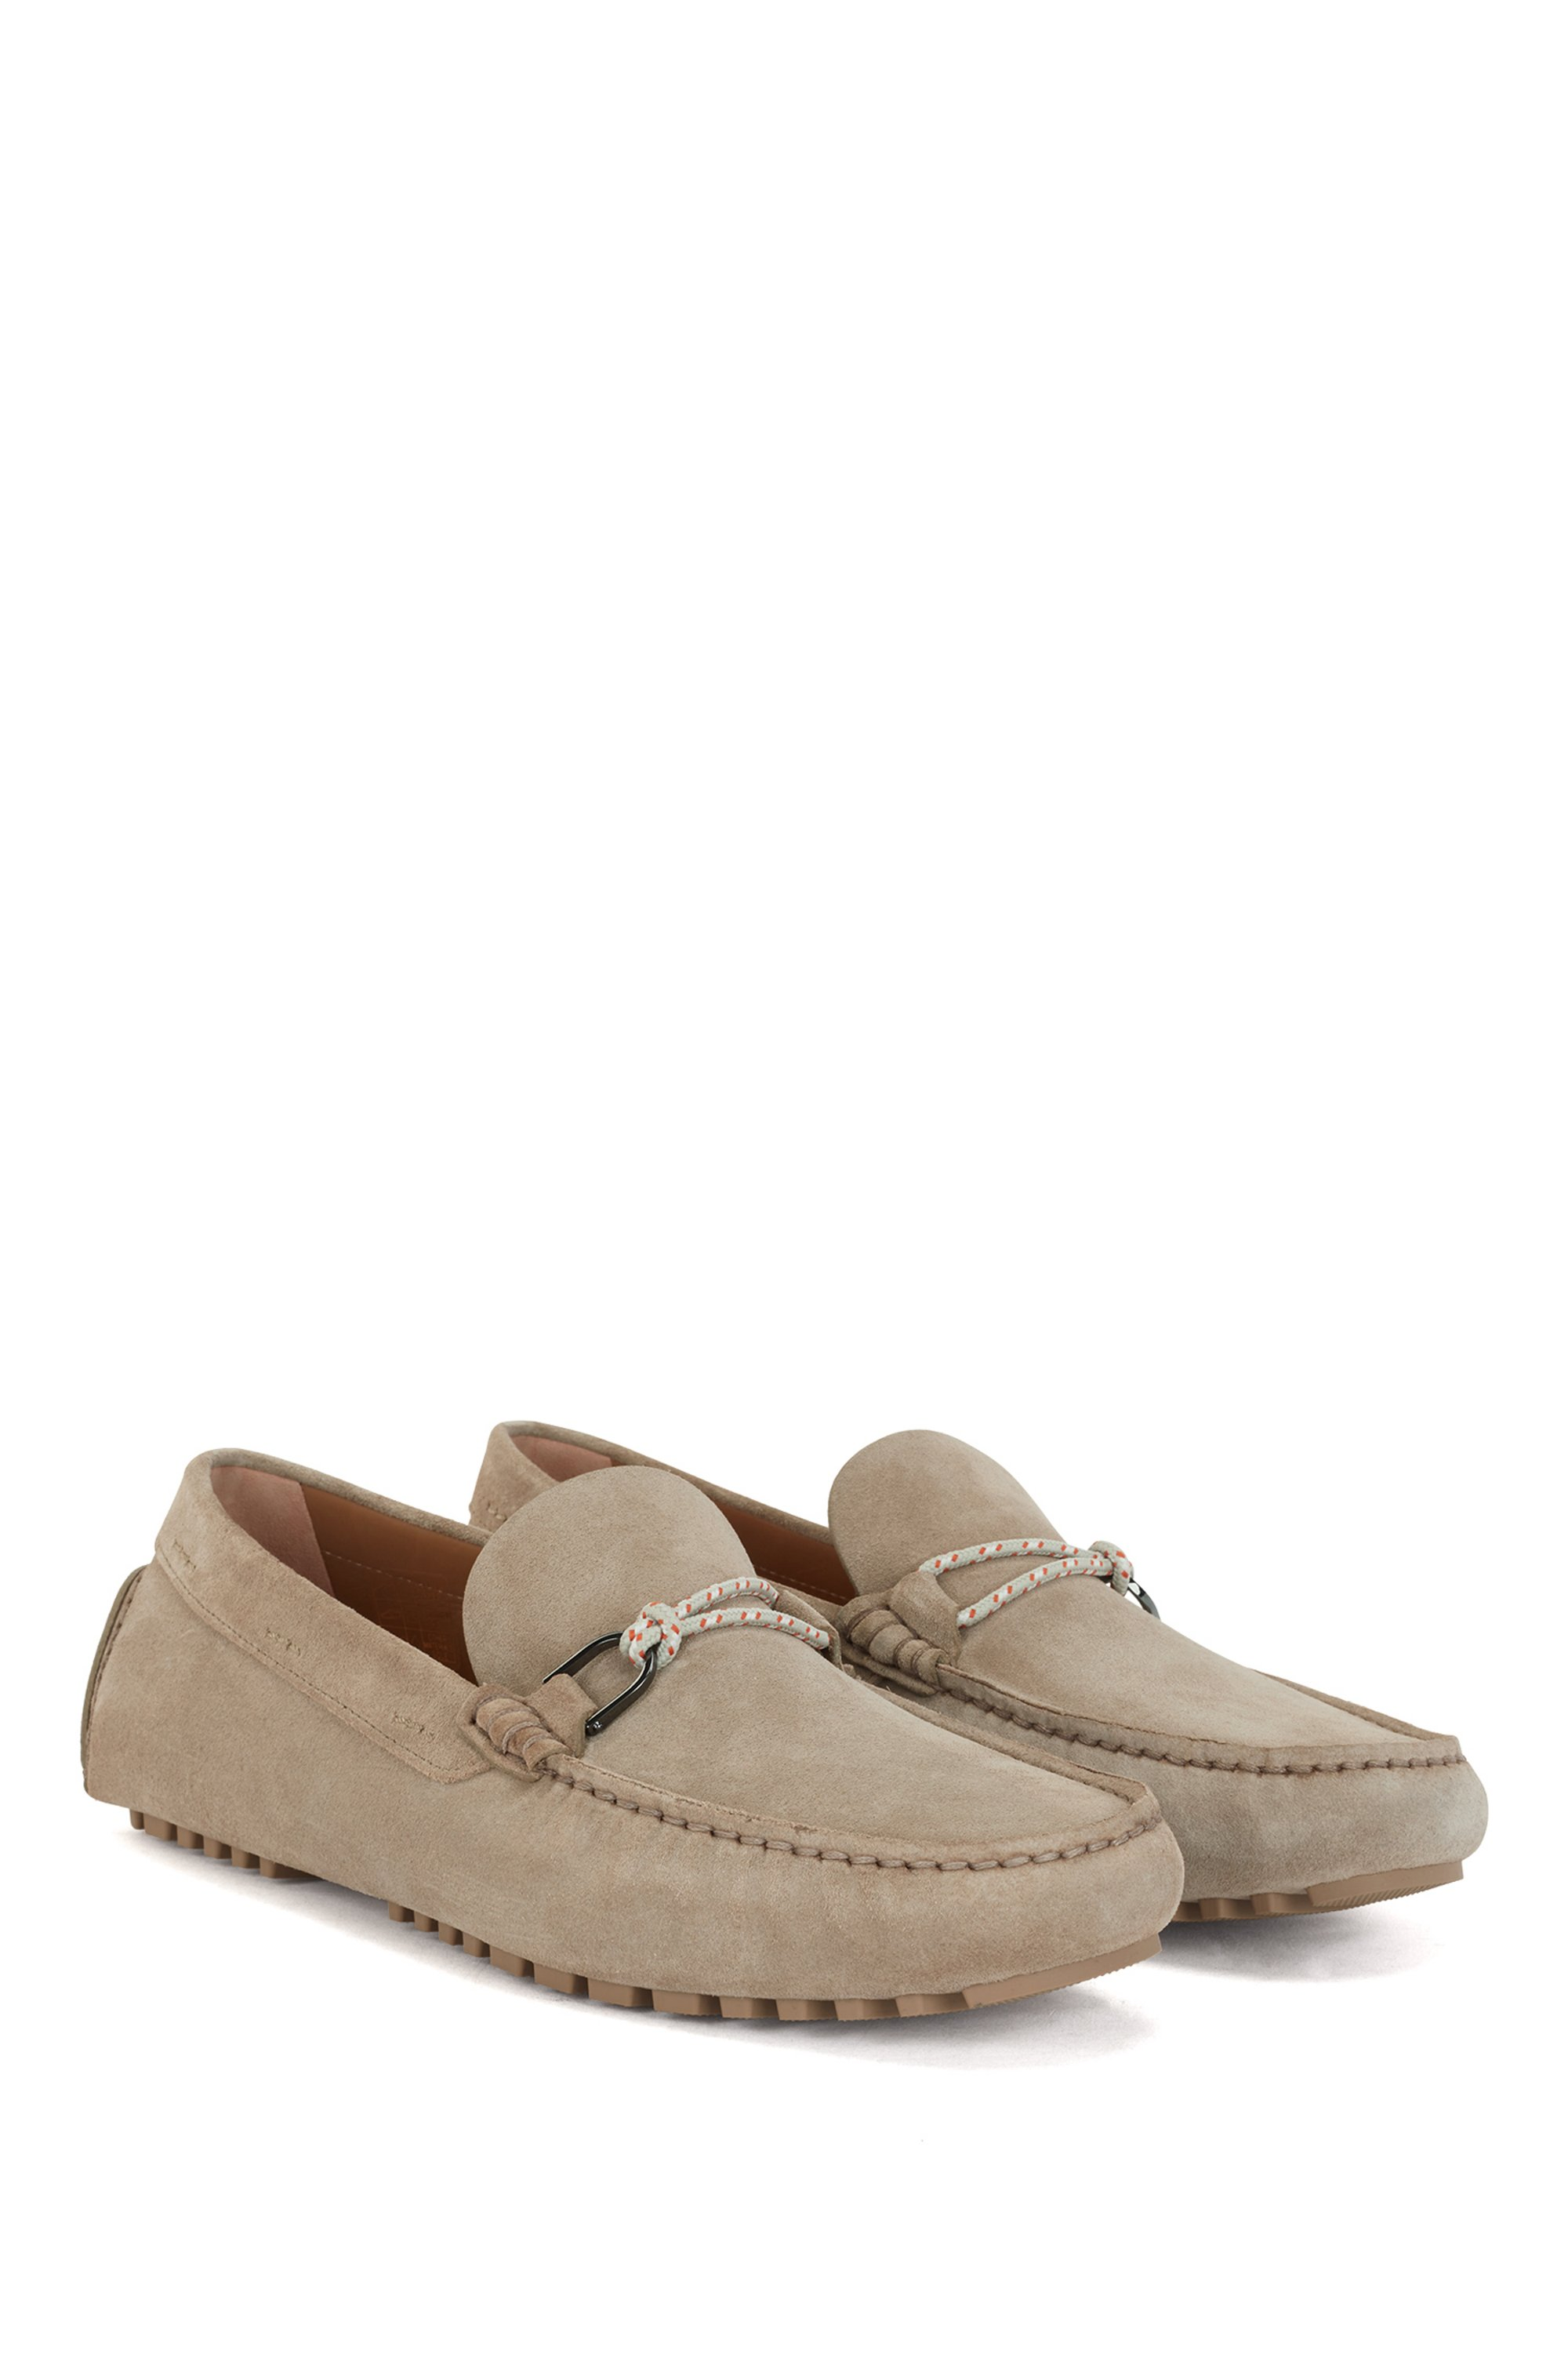 Italian-made driver moccasins in suede with cord trim